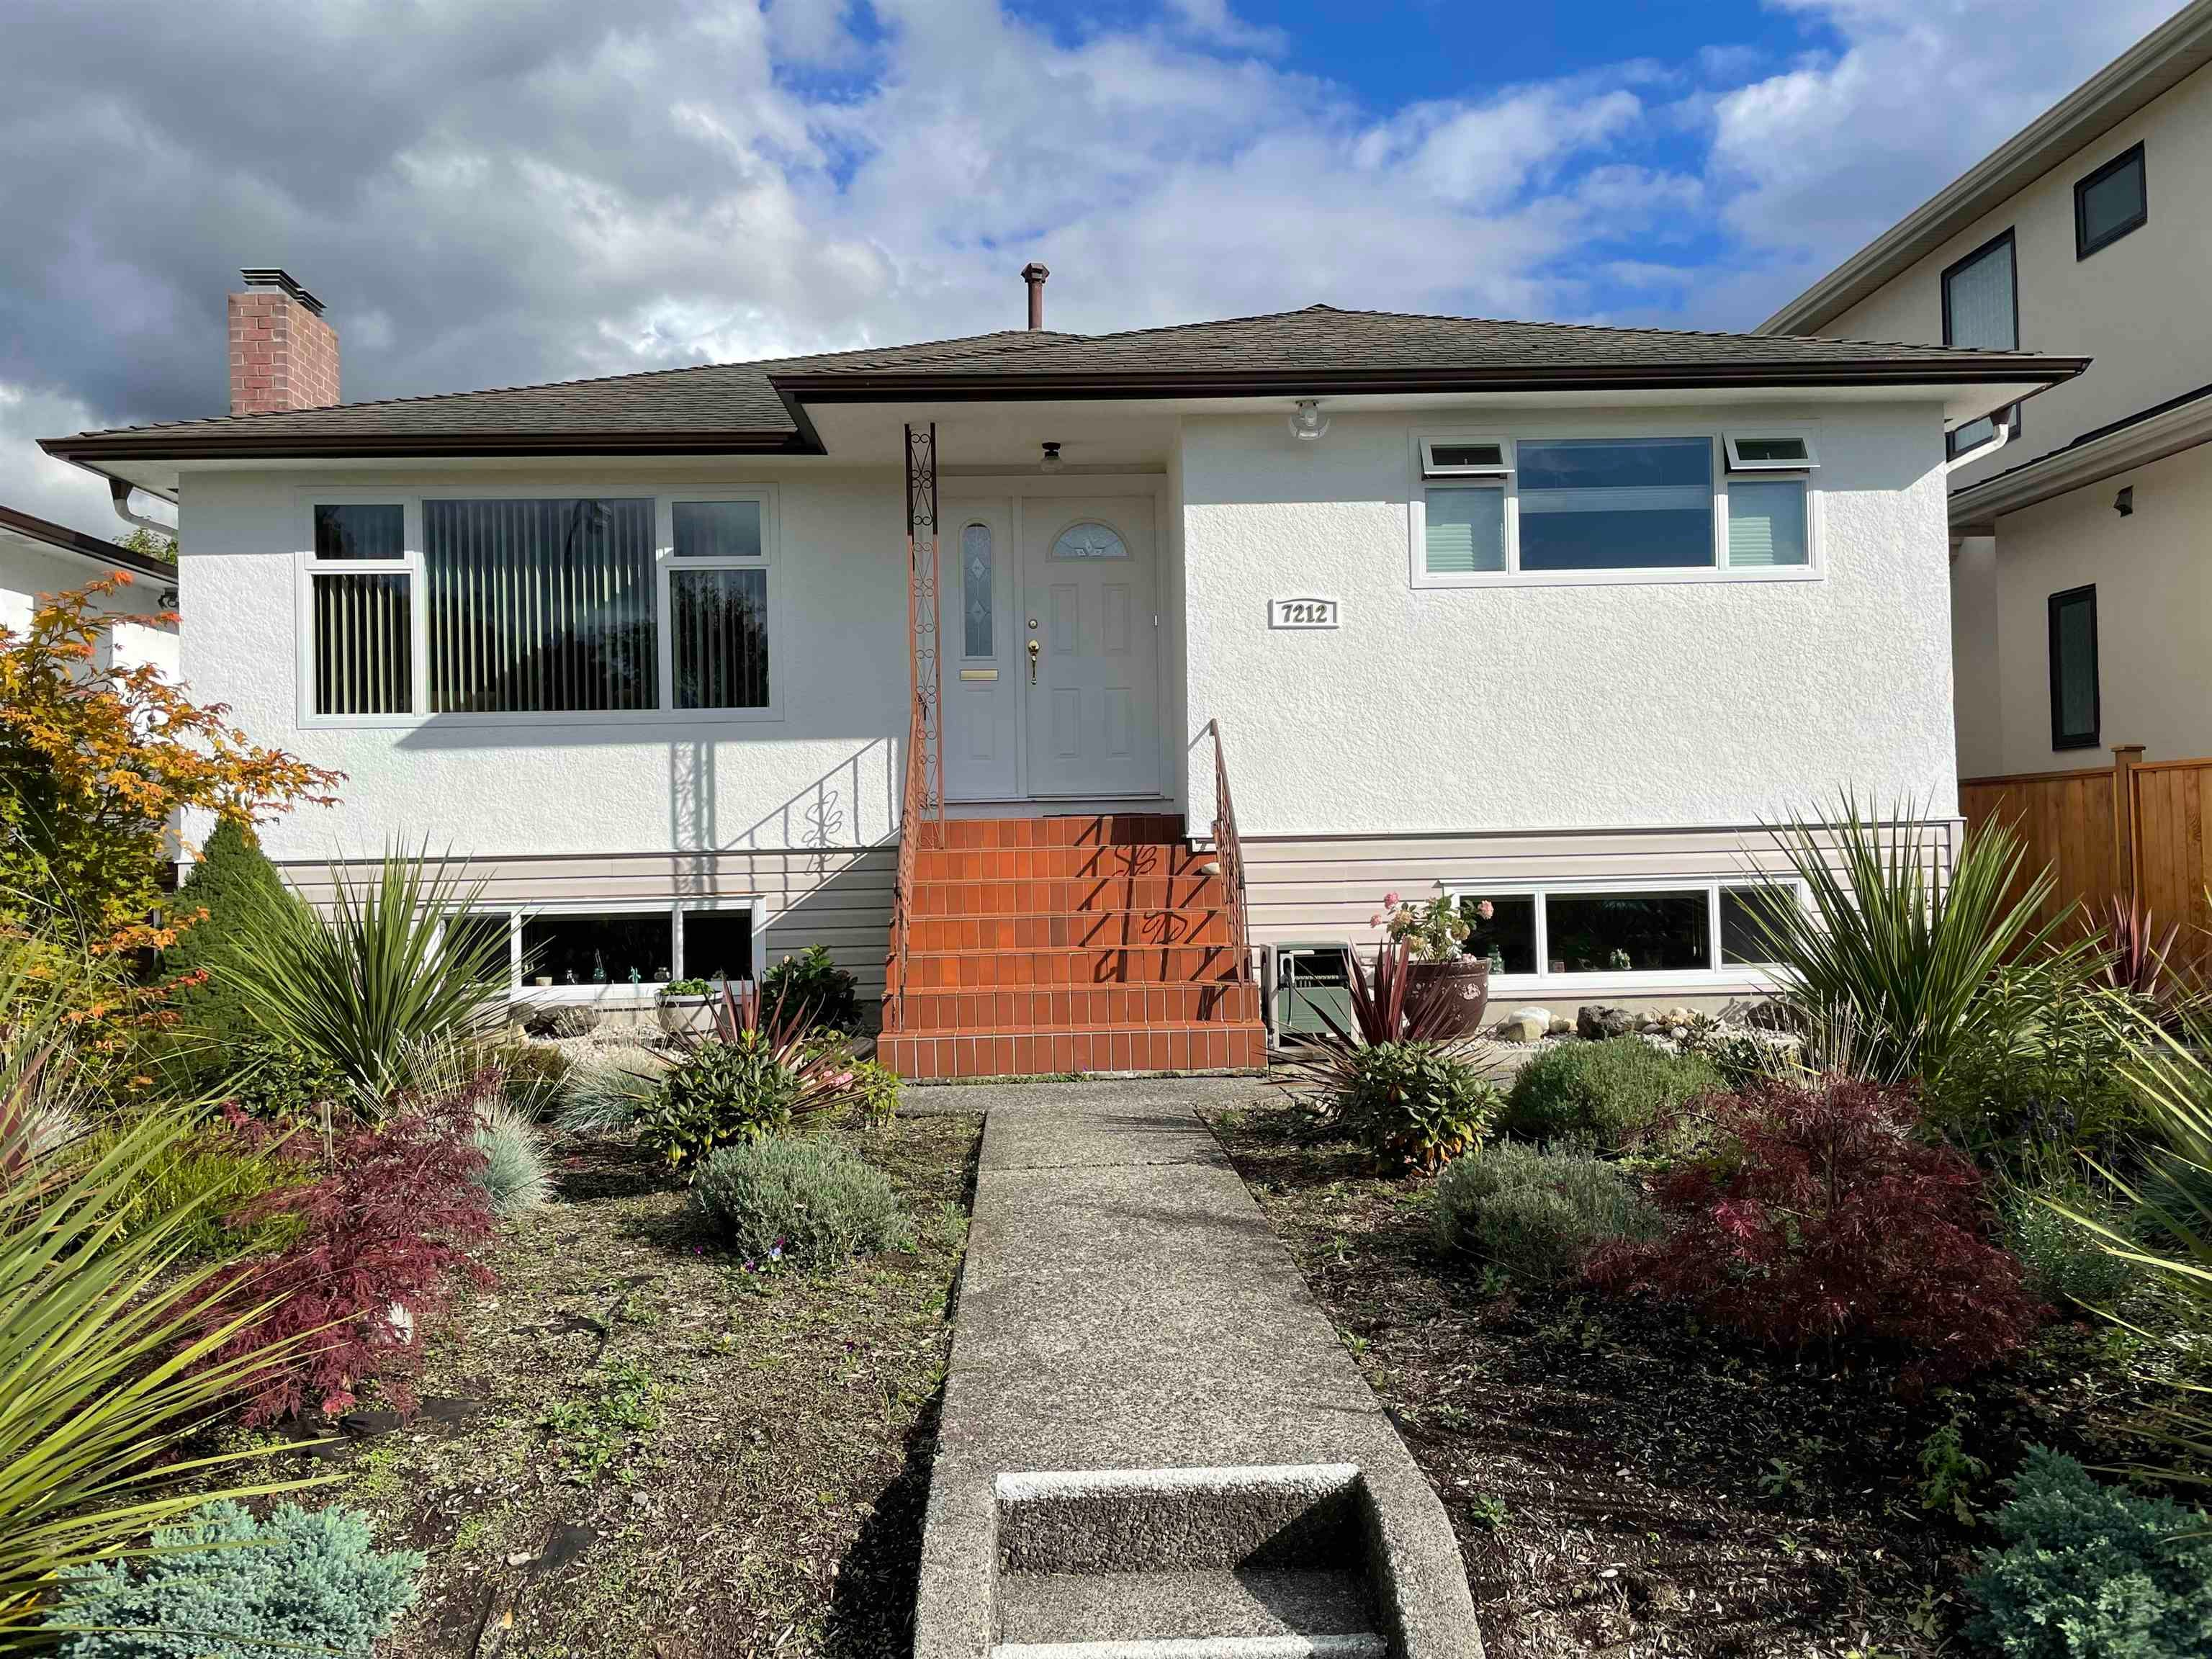 7212 VIVIAN DRIVE - Fraserview VE House/Single Family for sale, 4 Bedrooms (R2624847) - #1